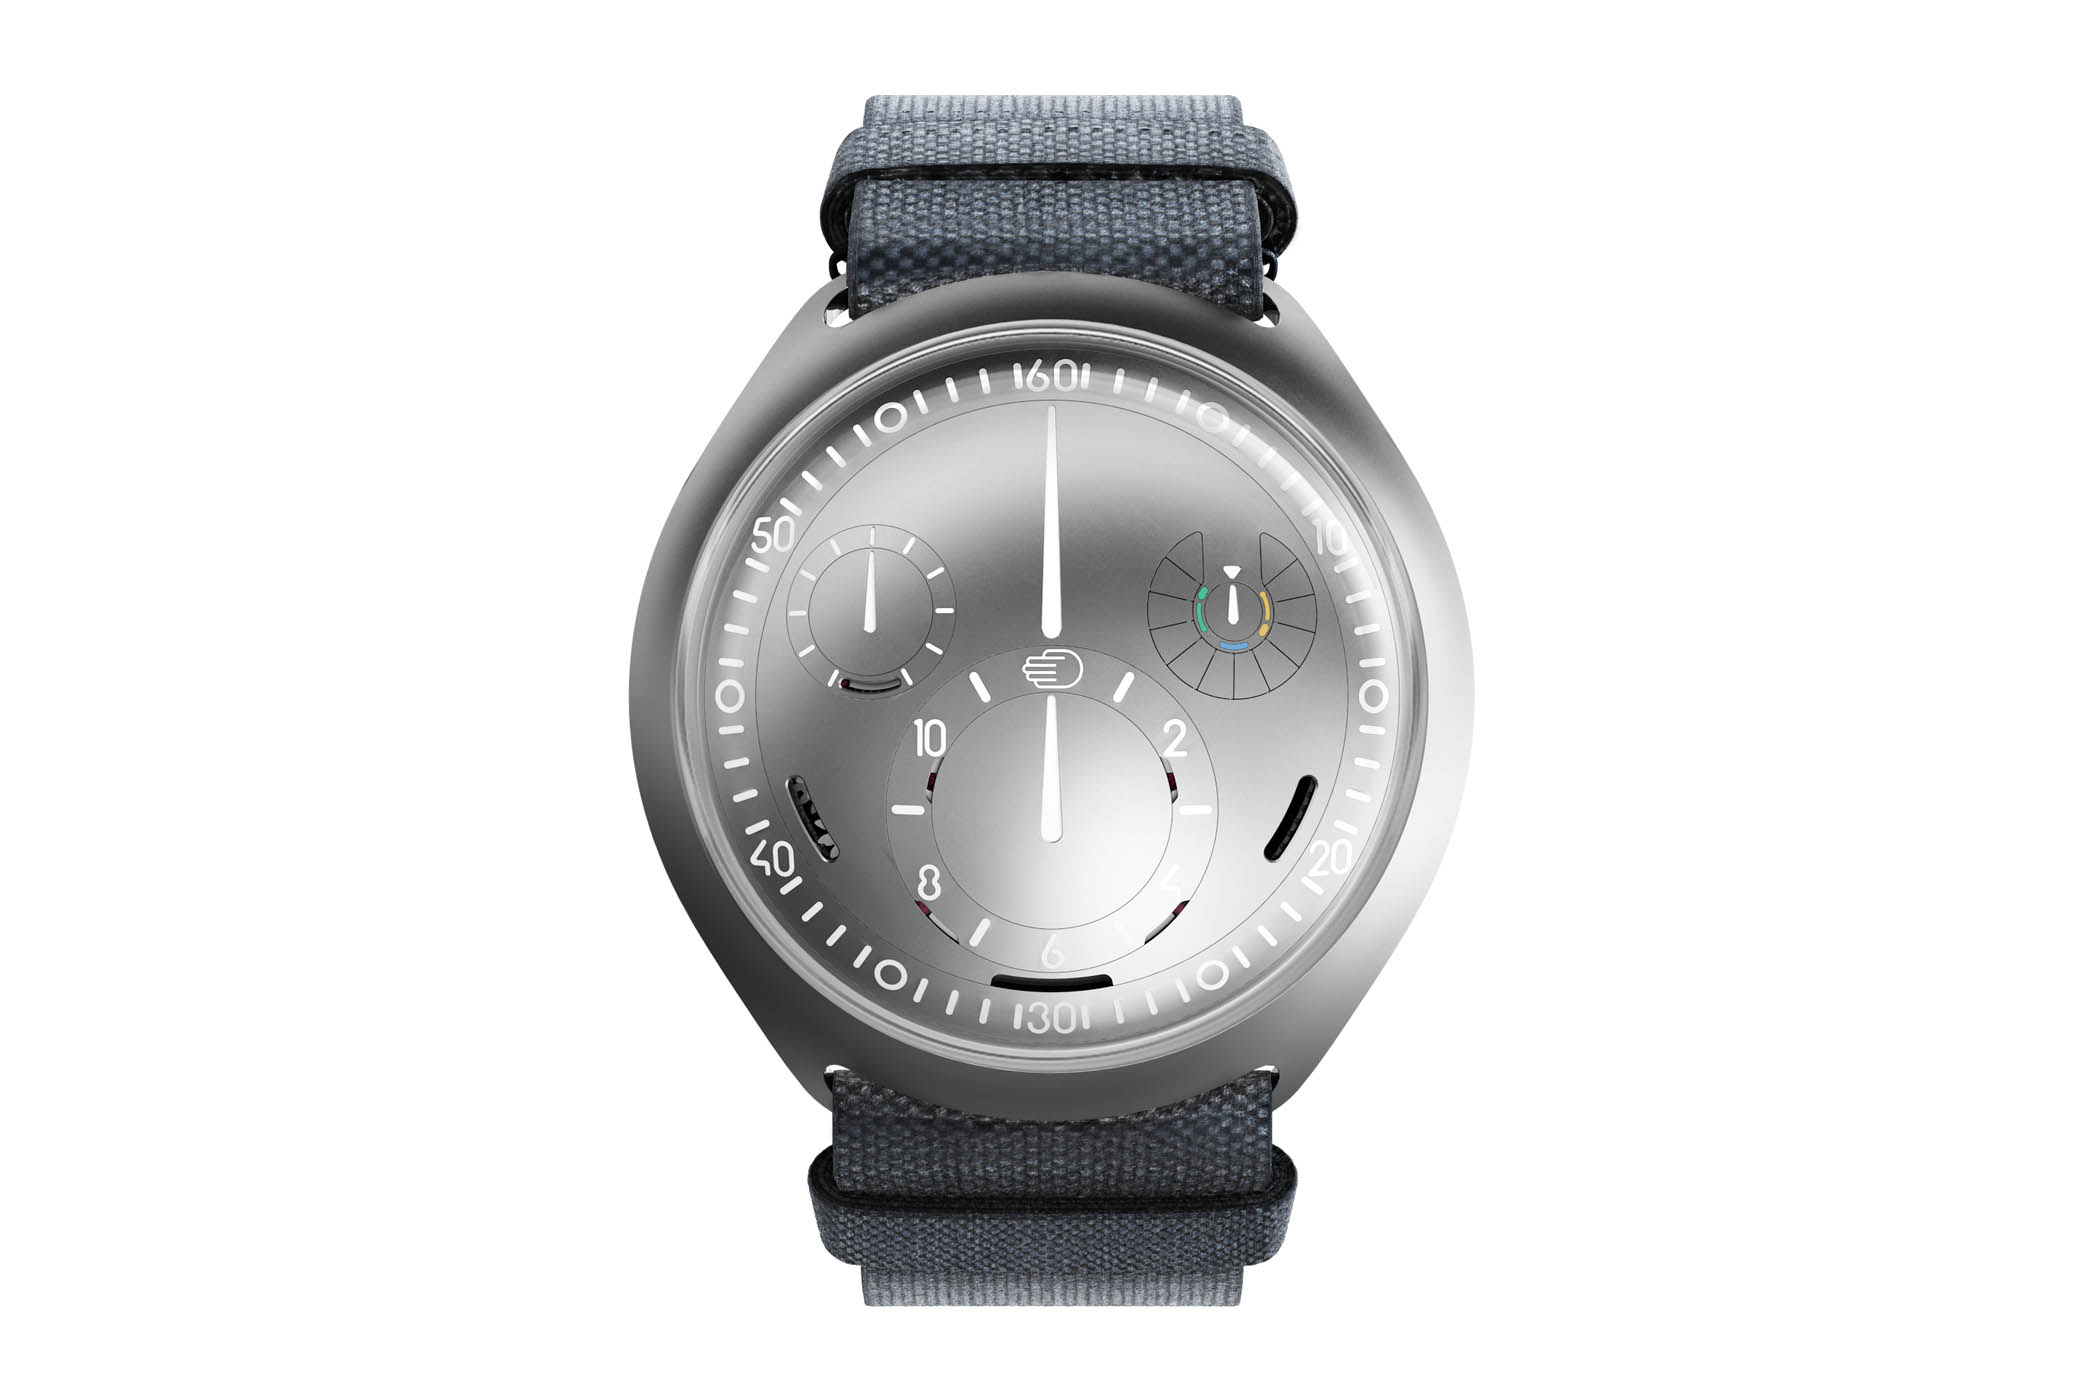 Ressence Type 2 E-Crown - first self-setting mechanical watch